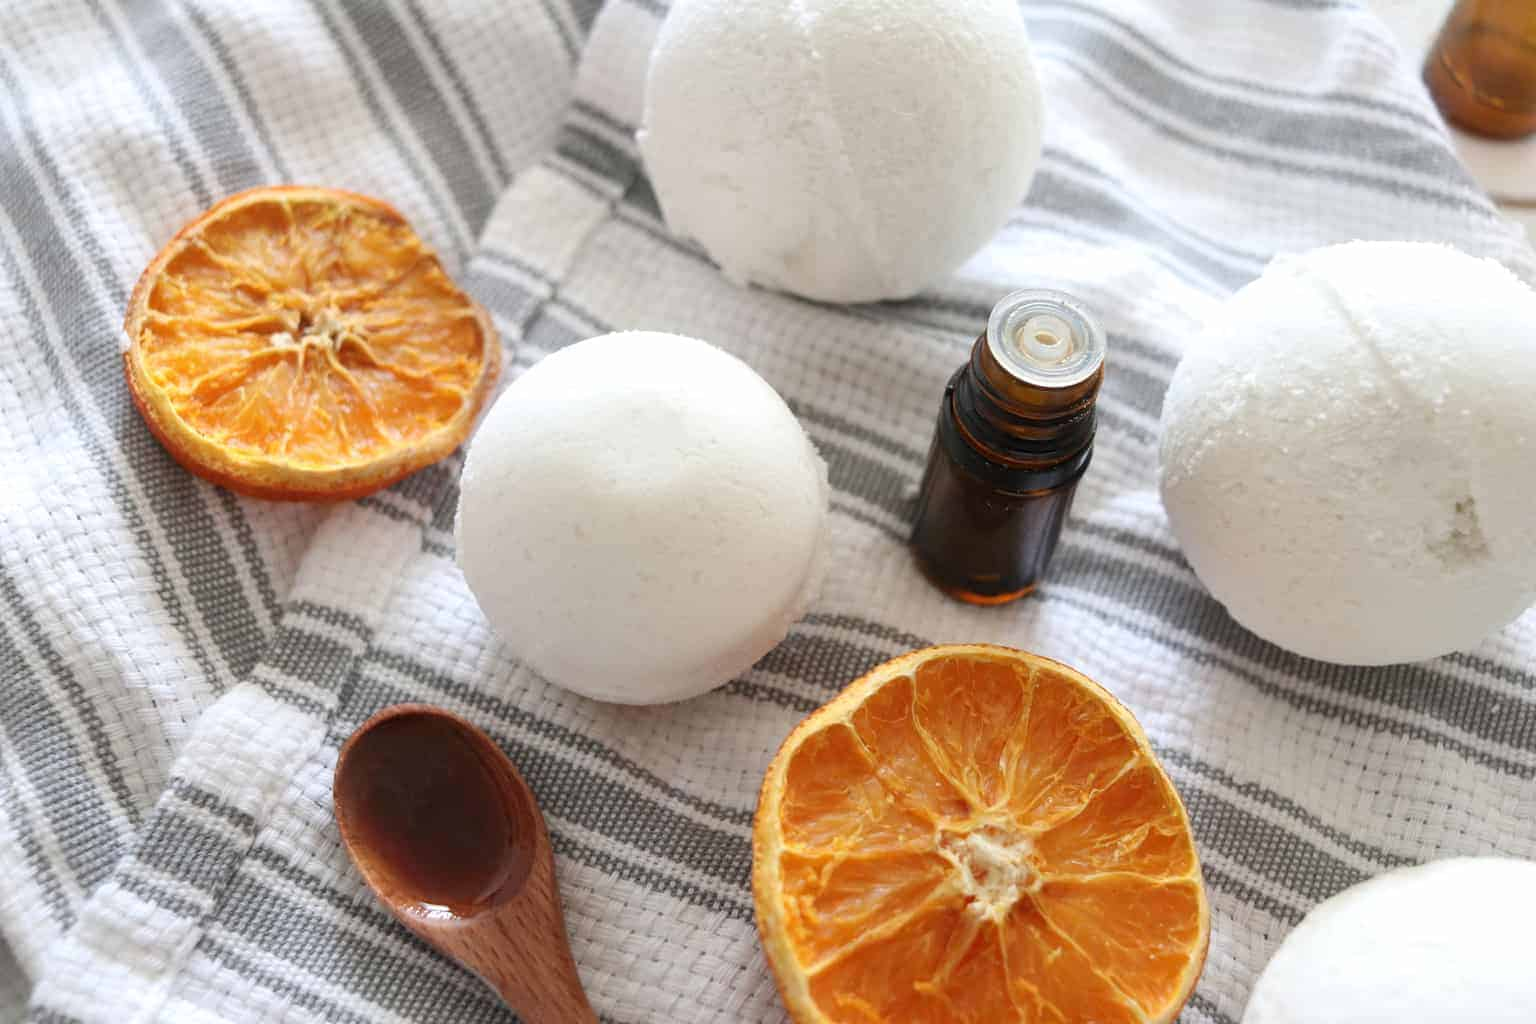 Bath bombs with dried orange slices and wooden tablespoon.